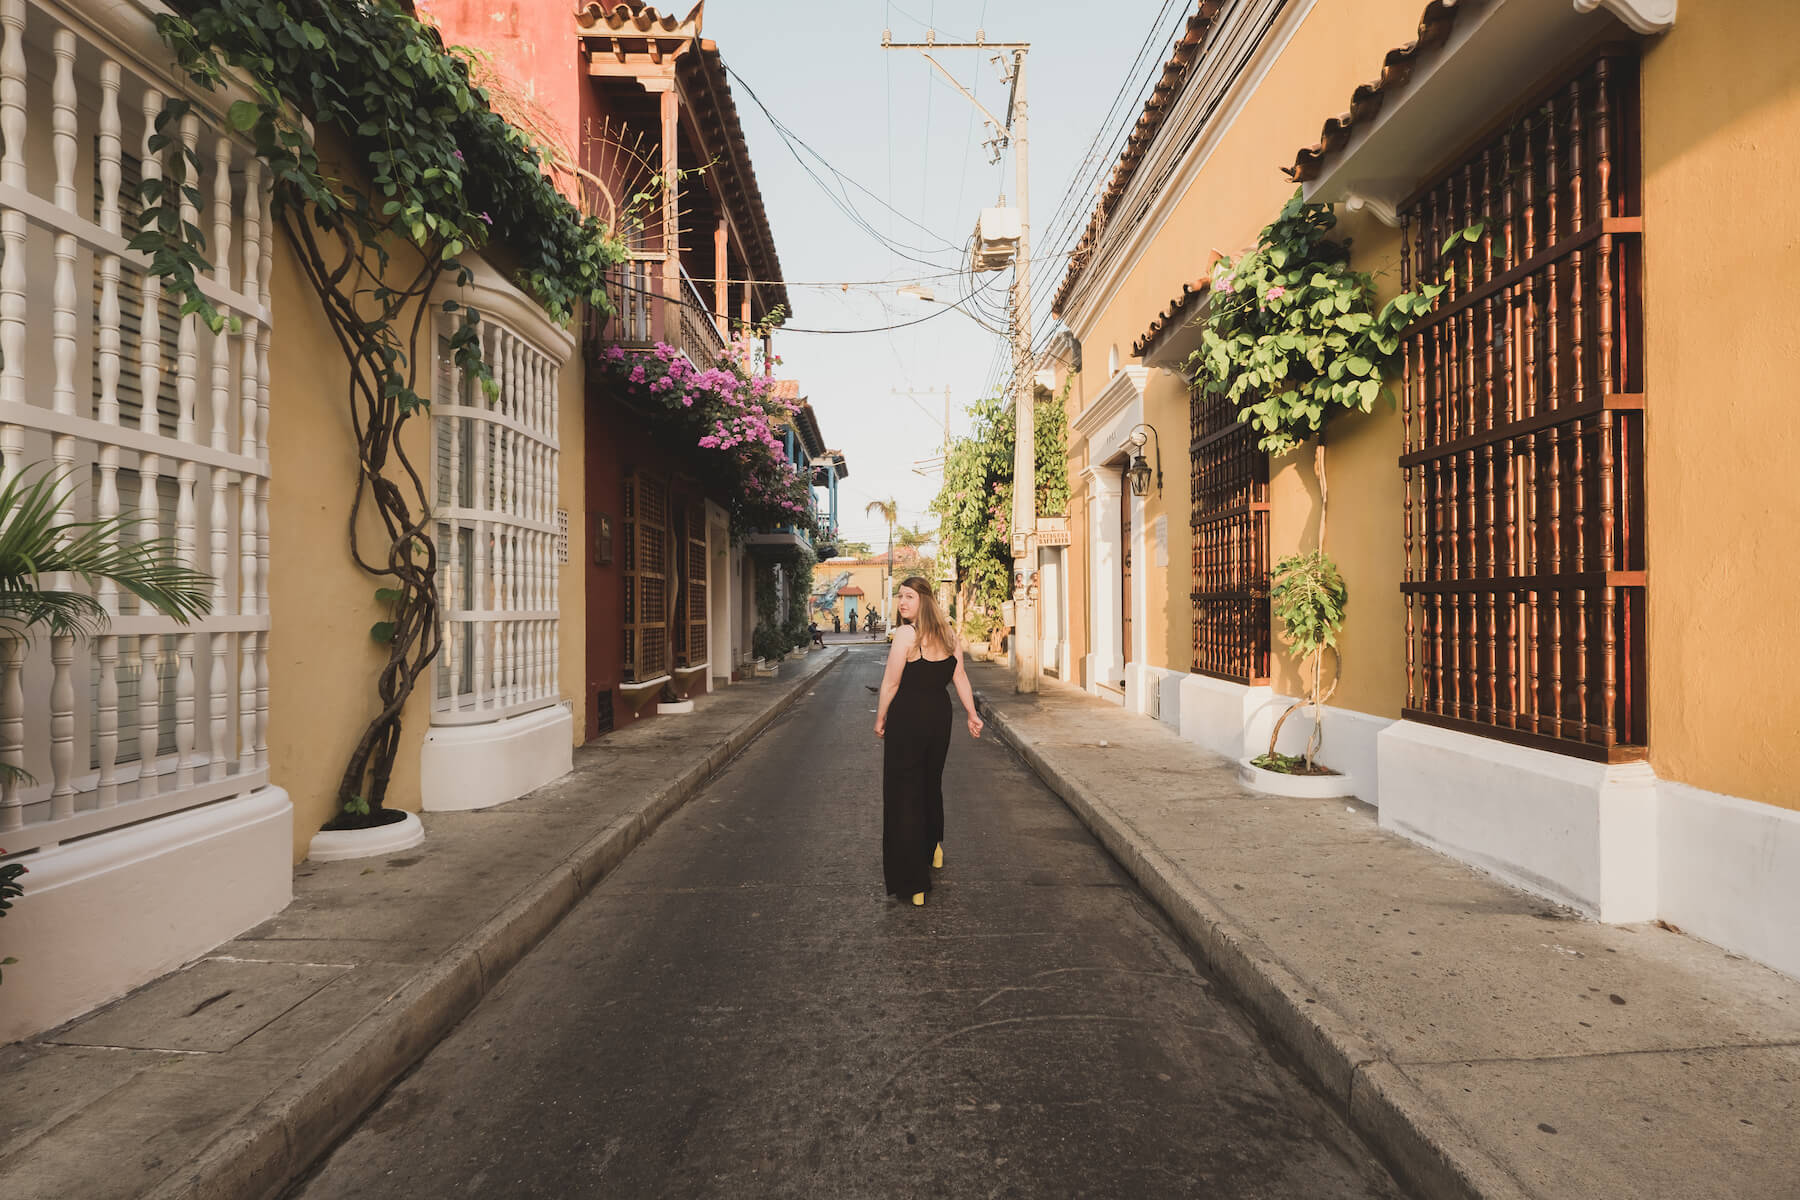 Solo traveler in Cartagena Colombia